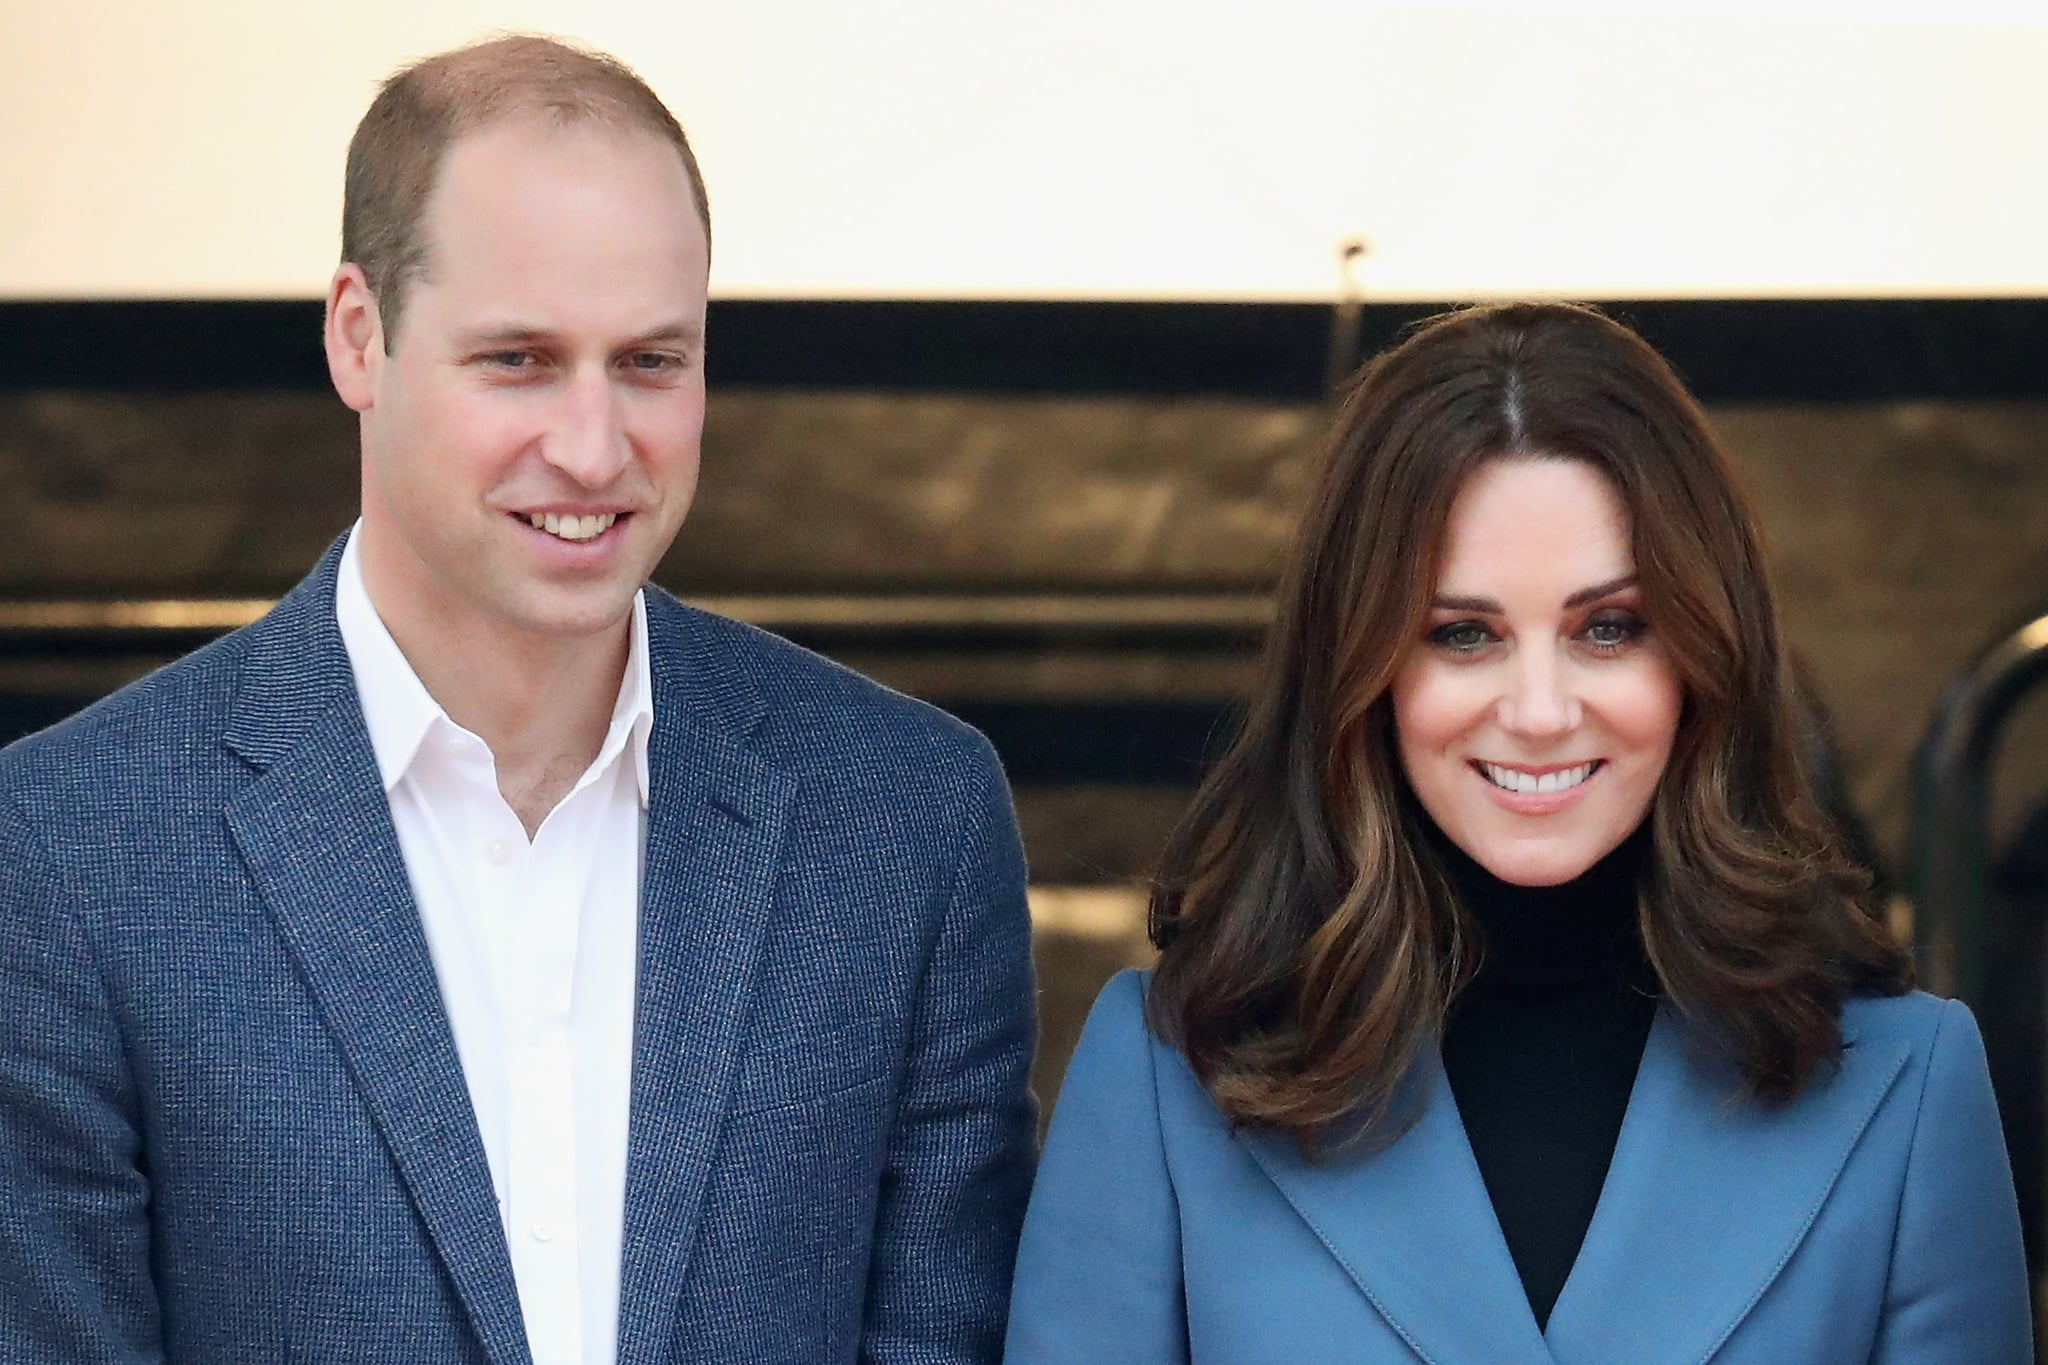 Here's why the Duke and Duchess of Cambridge's neighbours have complained